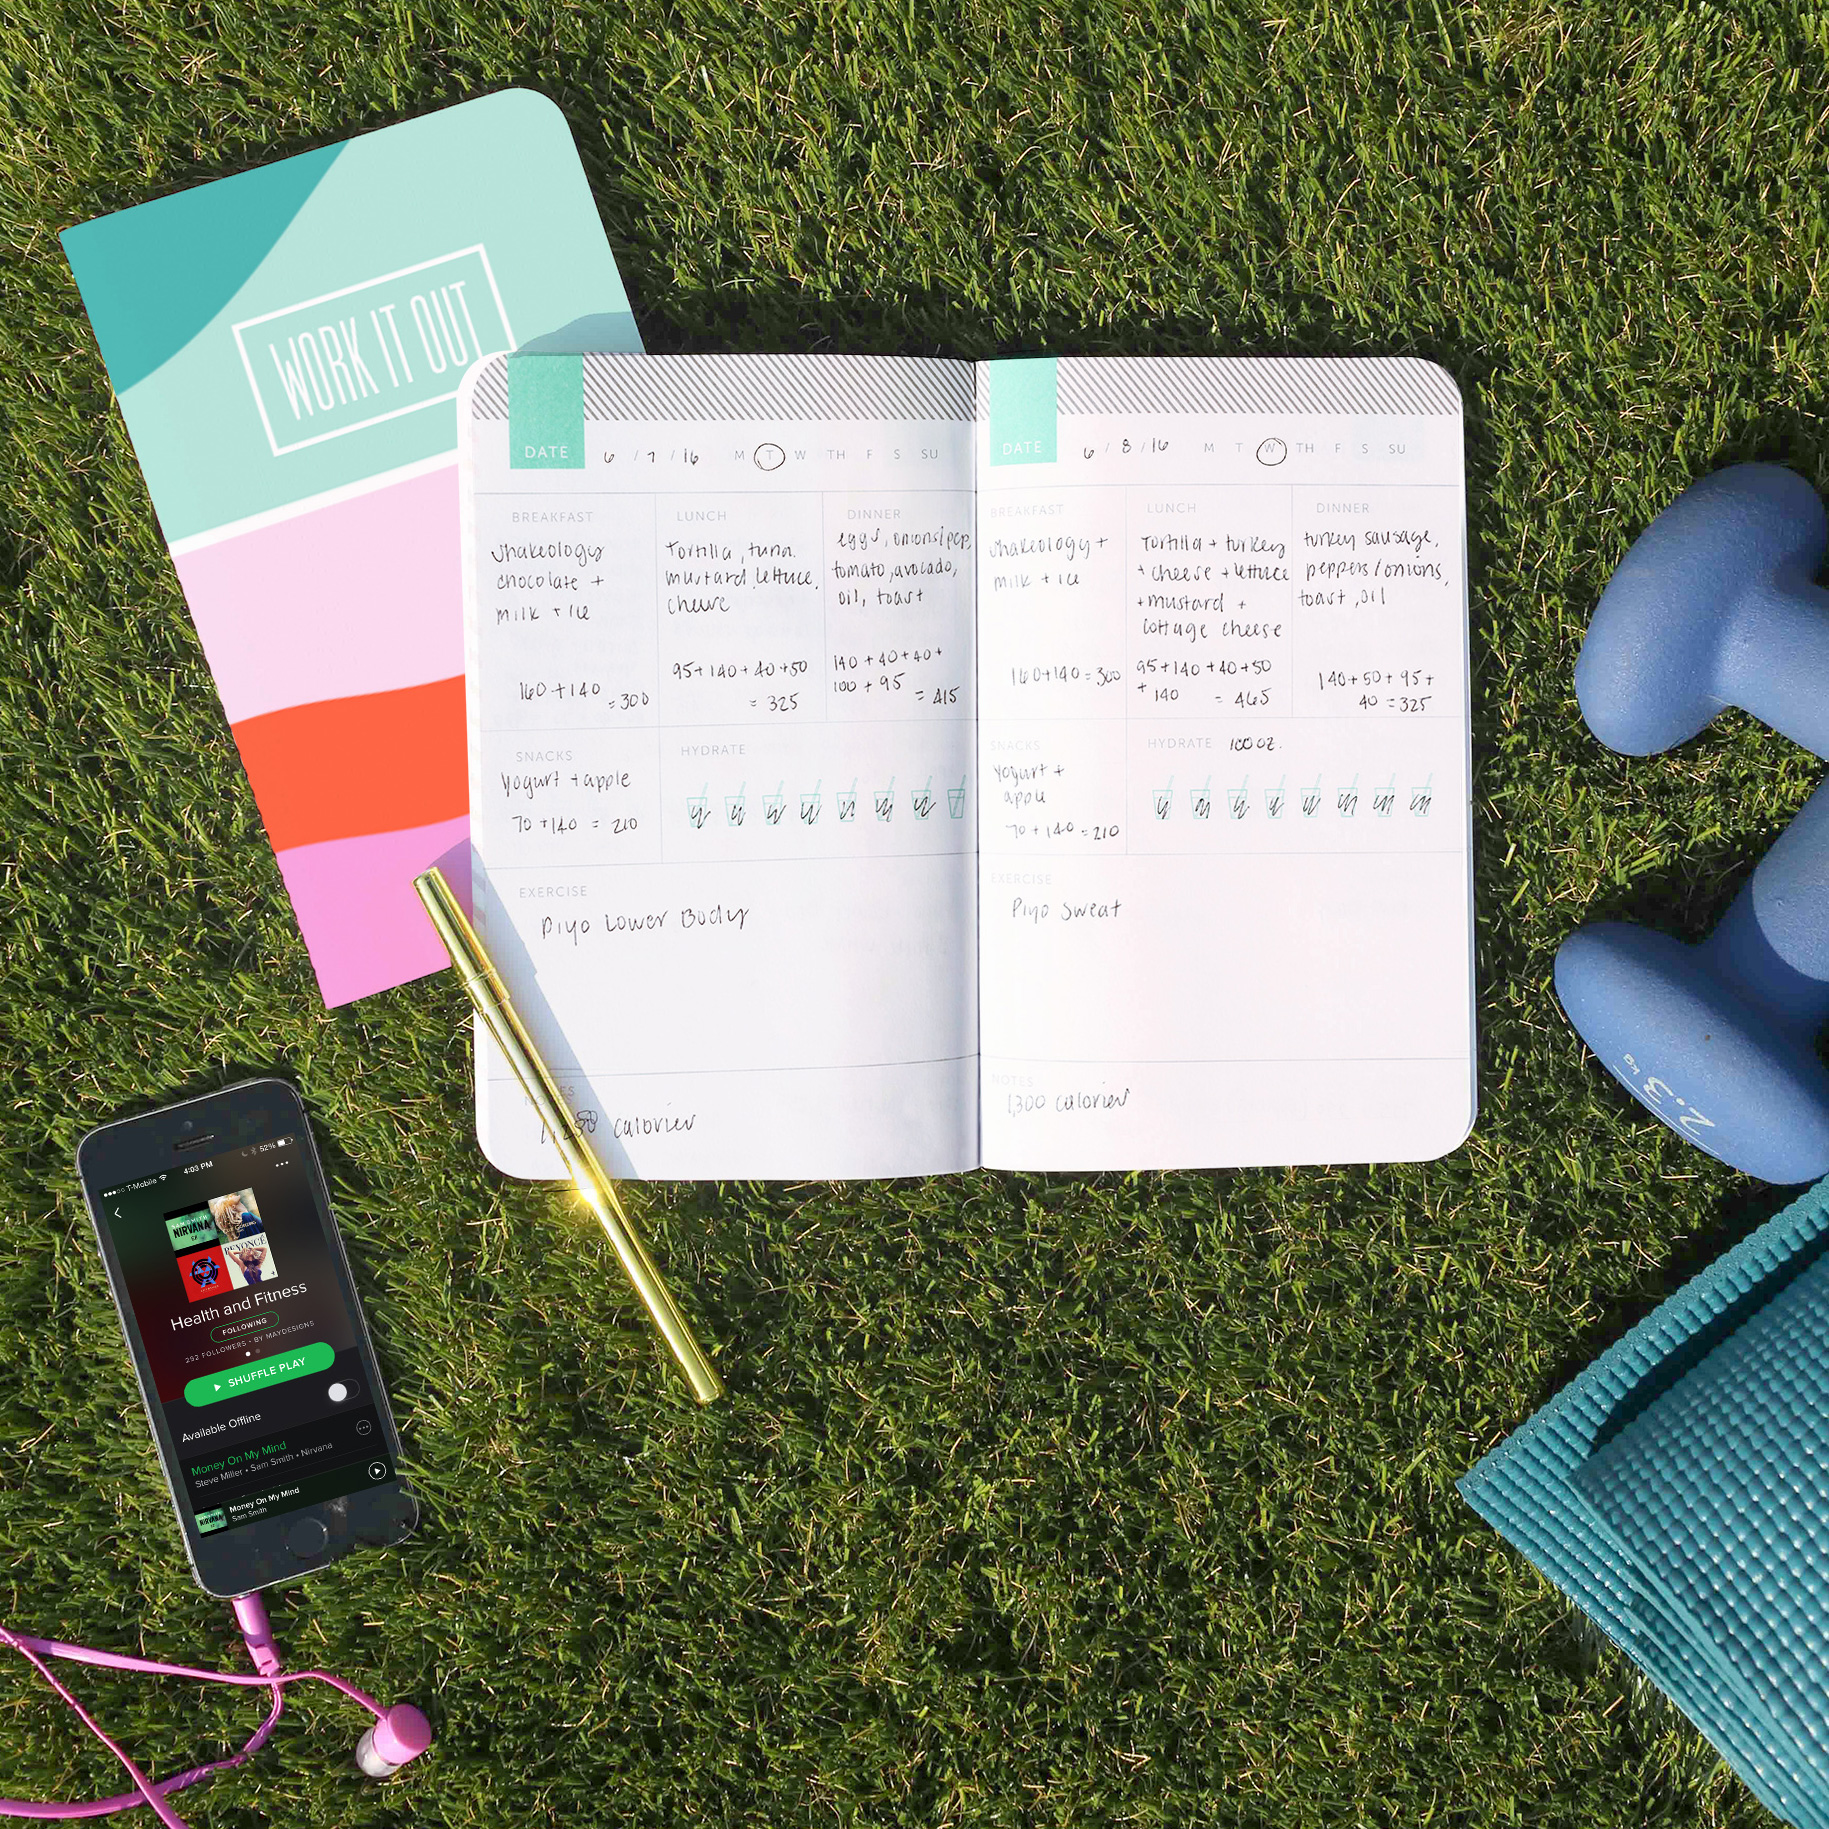 The New Year is just around the corner, so provide the healthiest people on your gift list with a dedicated space to record their goals for next year. May Designs offers a customizable journal that includes 76 pages where you can track your meals, snacks, water, and exercise habits. Their Classic size fits perfectly in gym bags or purses so tracking is never a hassle. Starts at $18, maydesigns.com